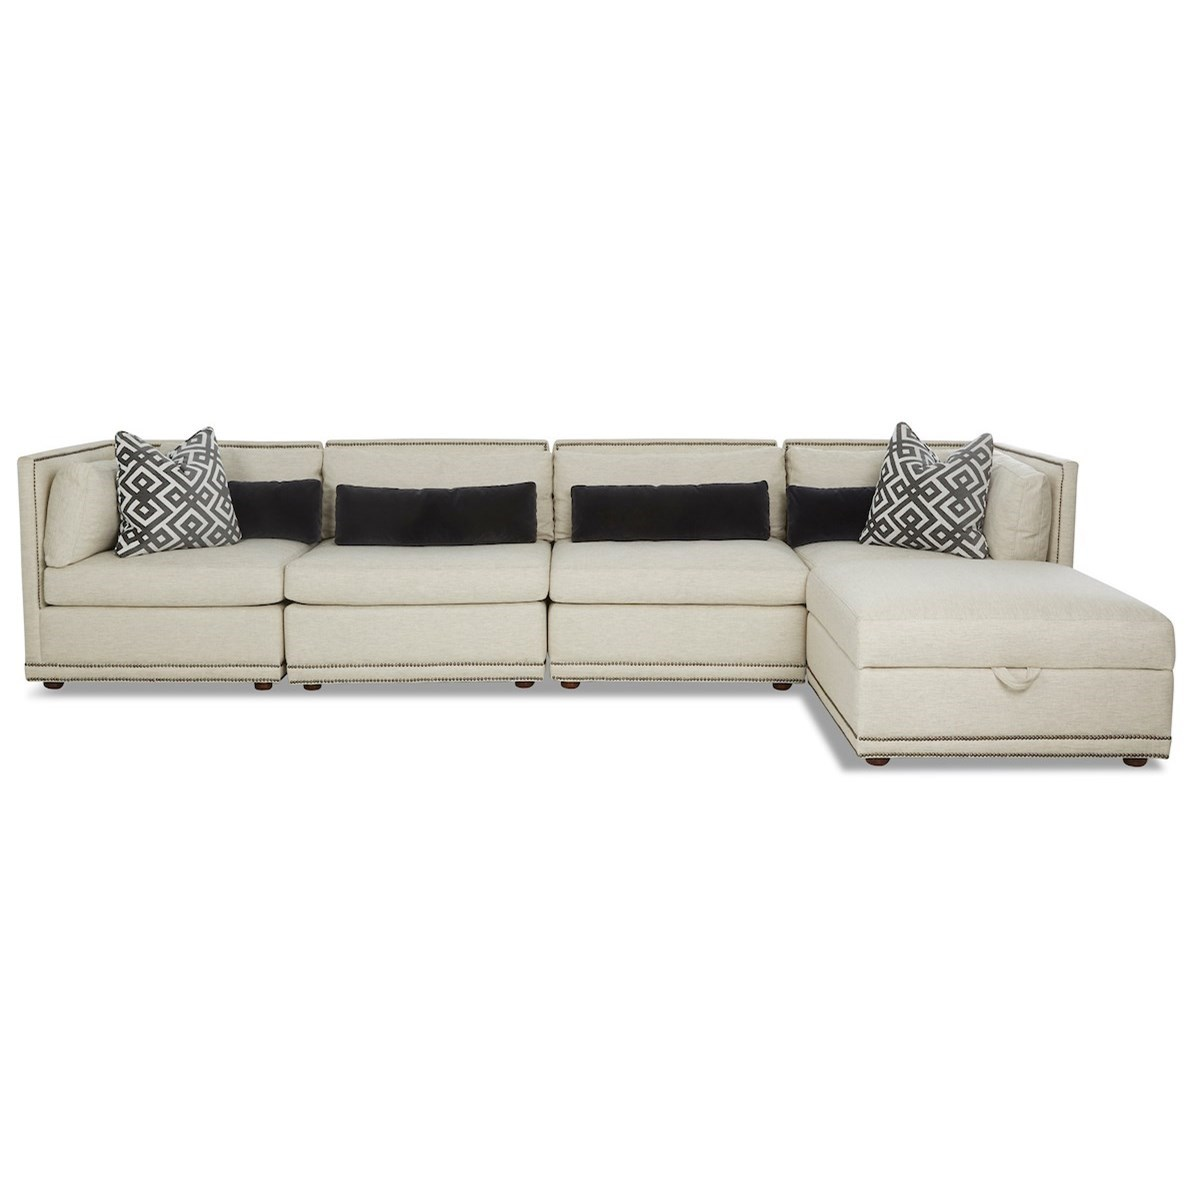 Rexford 5-Seat Sectional Chaise Sofa by Klaussner at Van Hill Furniture